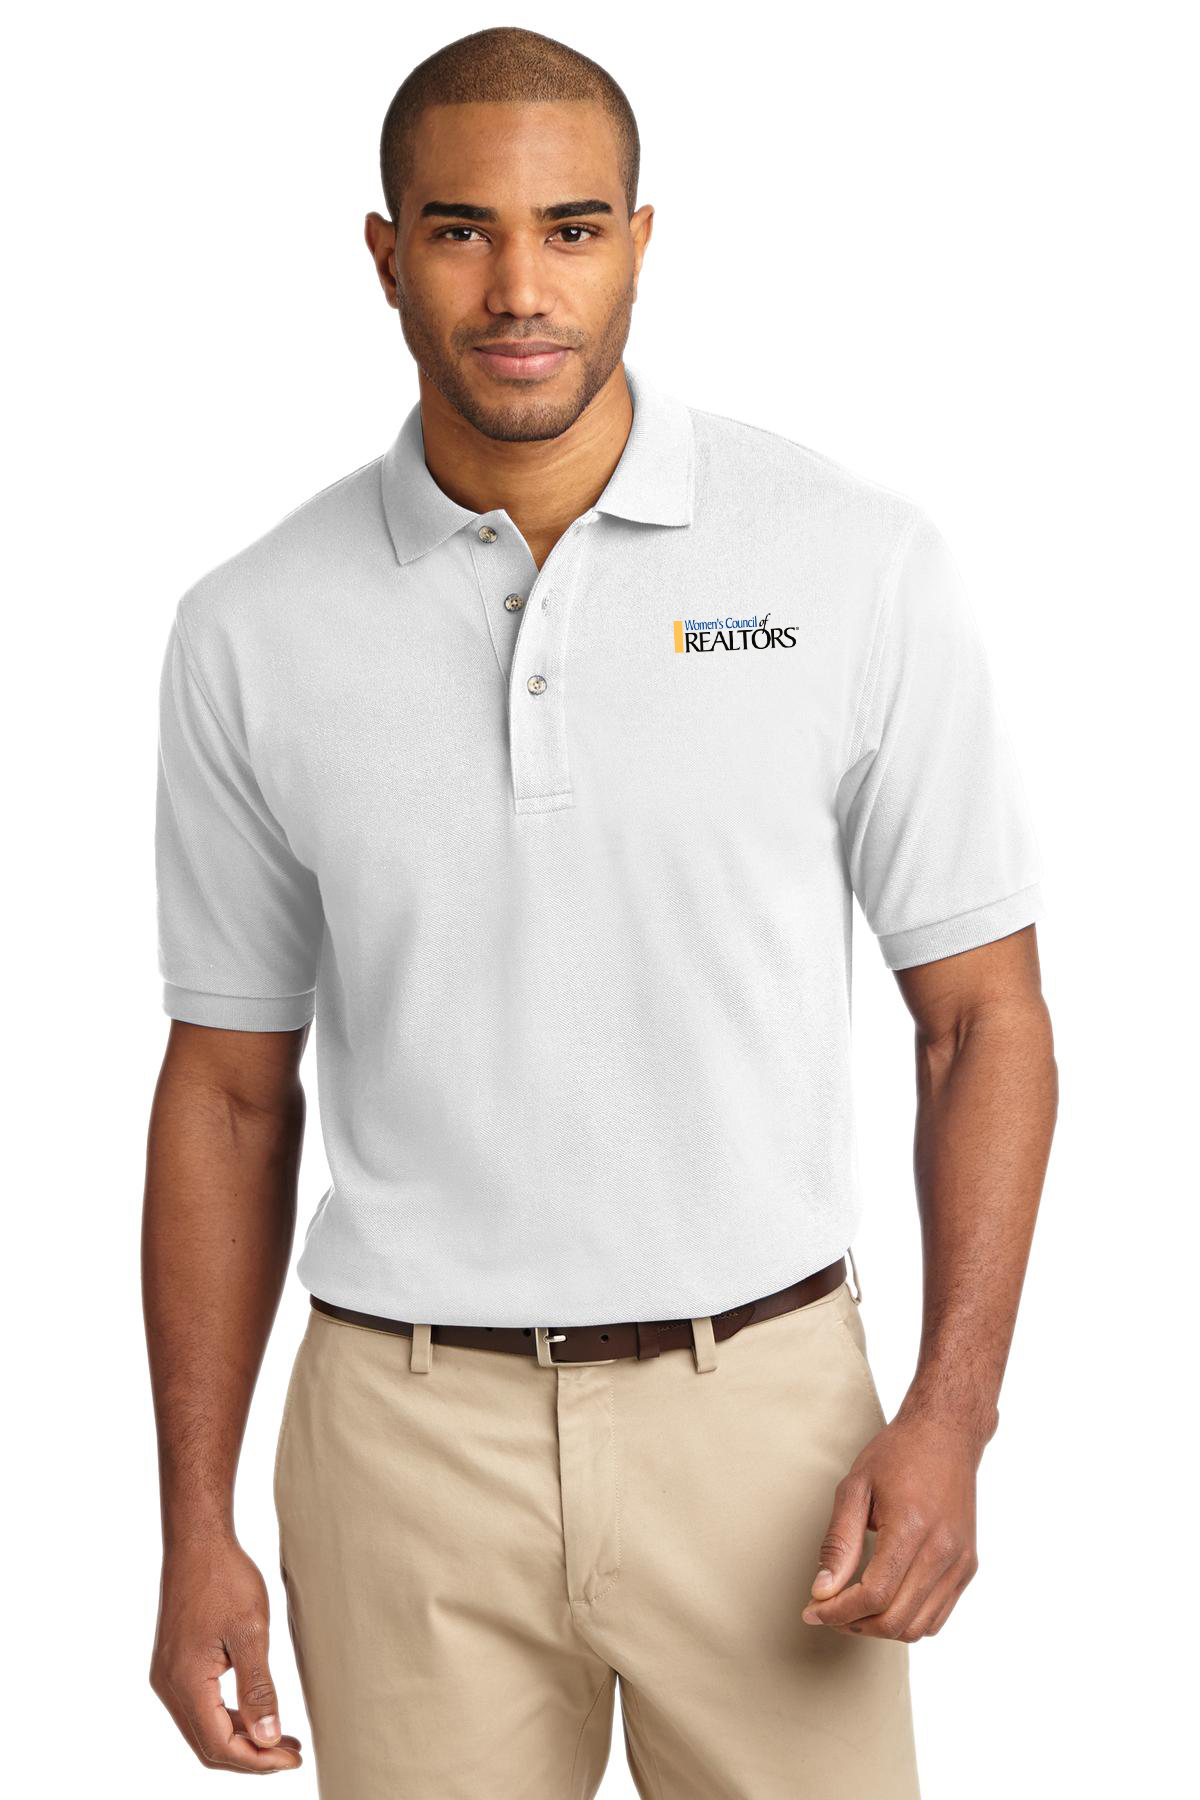 Mens Pique Polo Shirt Golfs, Shirts, Collared, Polos, Plackets